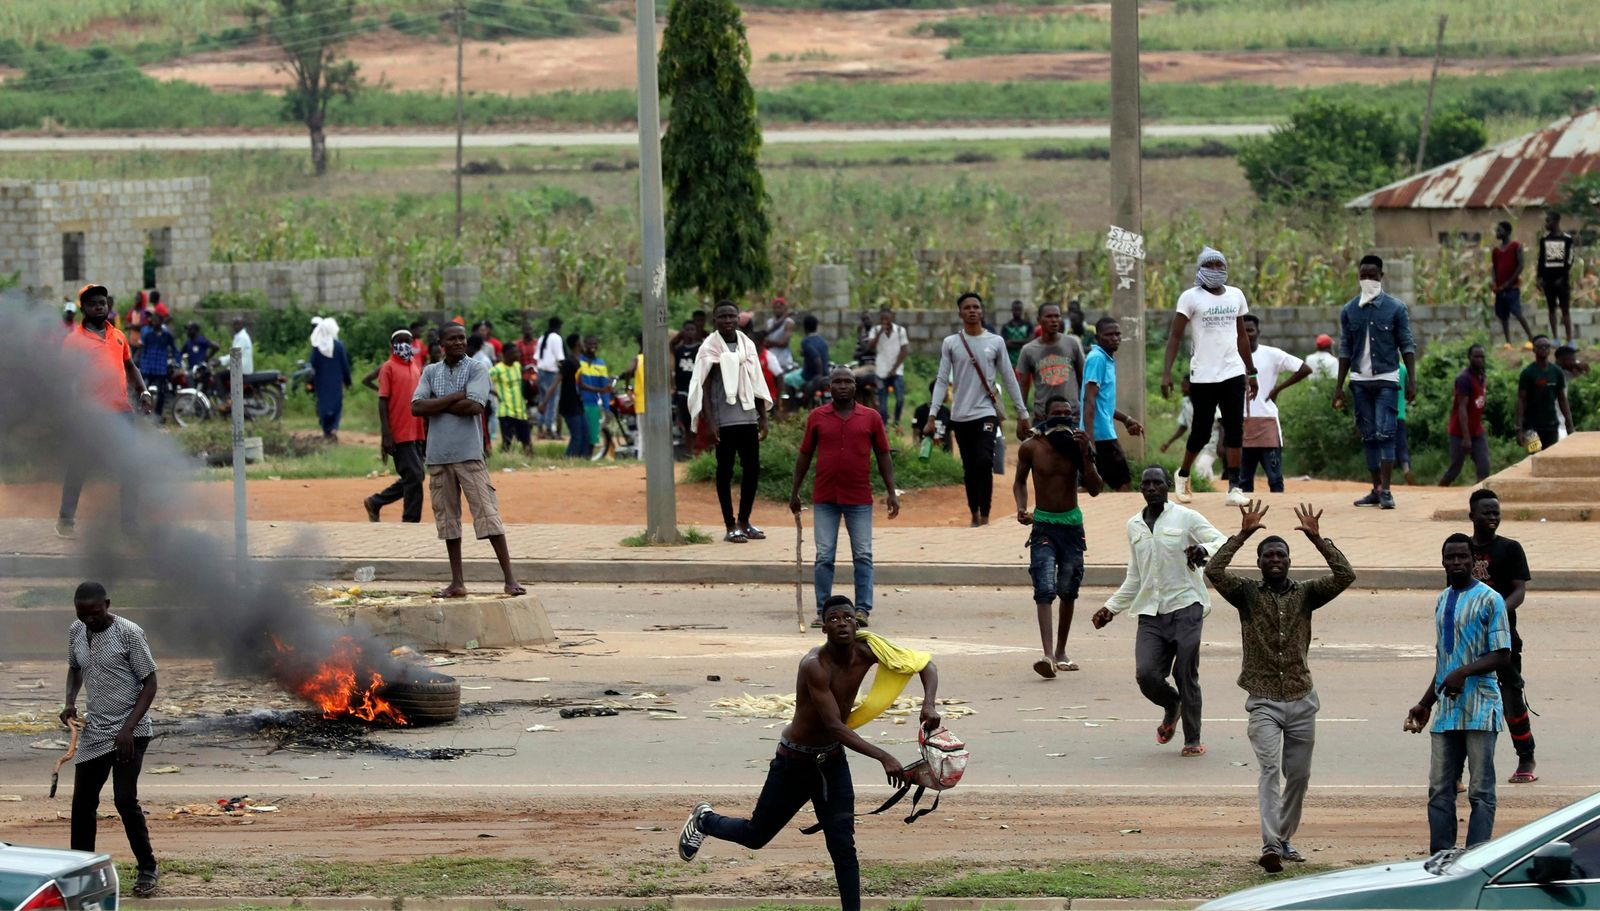 Protesters throw rocks at policemen during an attack on South African business, in Abuja, Nigeria, Wednesday Sept. 4, 2019.{ } (AP Photo)